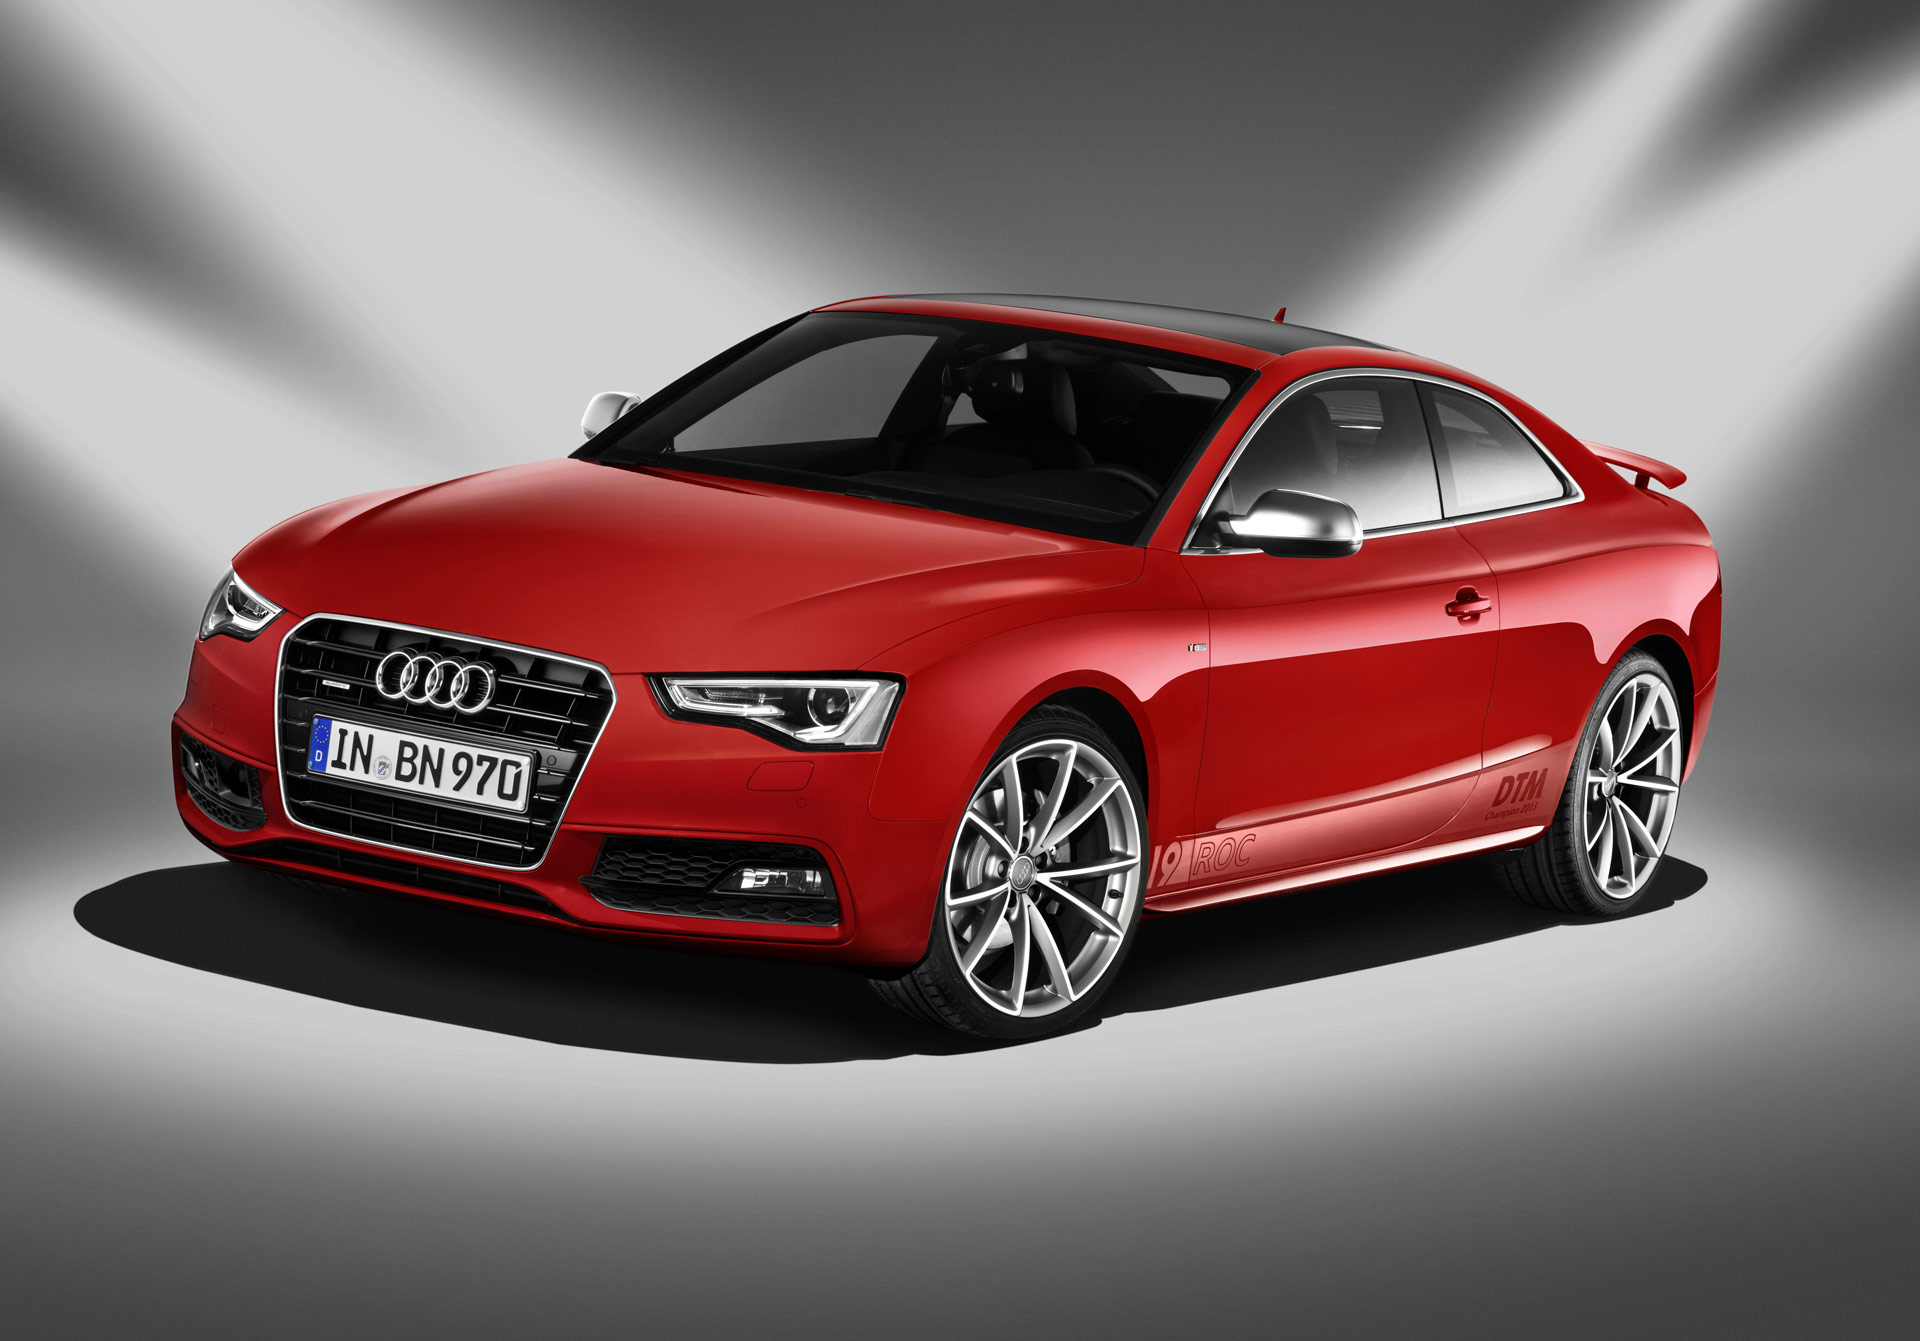 2014 audi a5 dtm edition. Black Bedroom Furniture Sets. Home Design Ideas